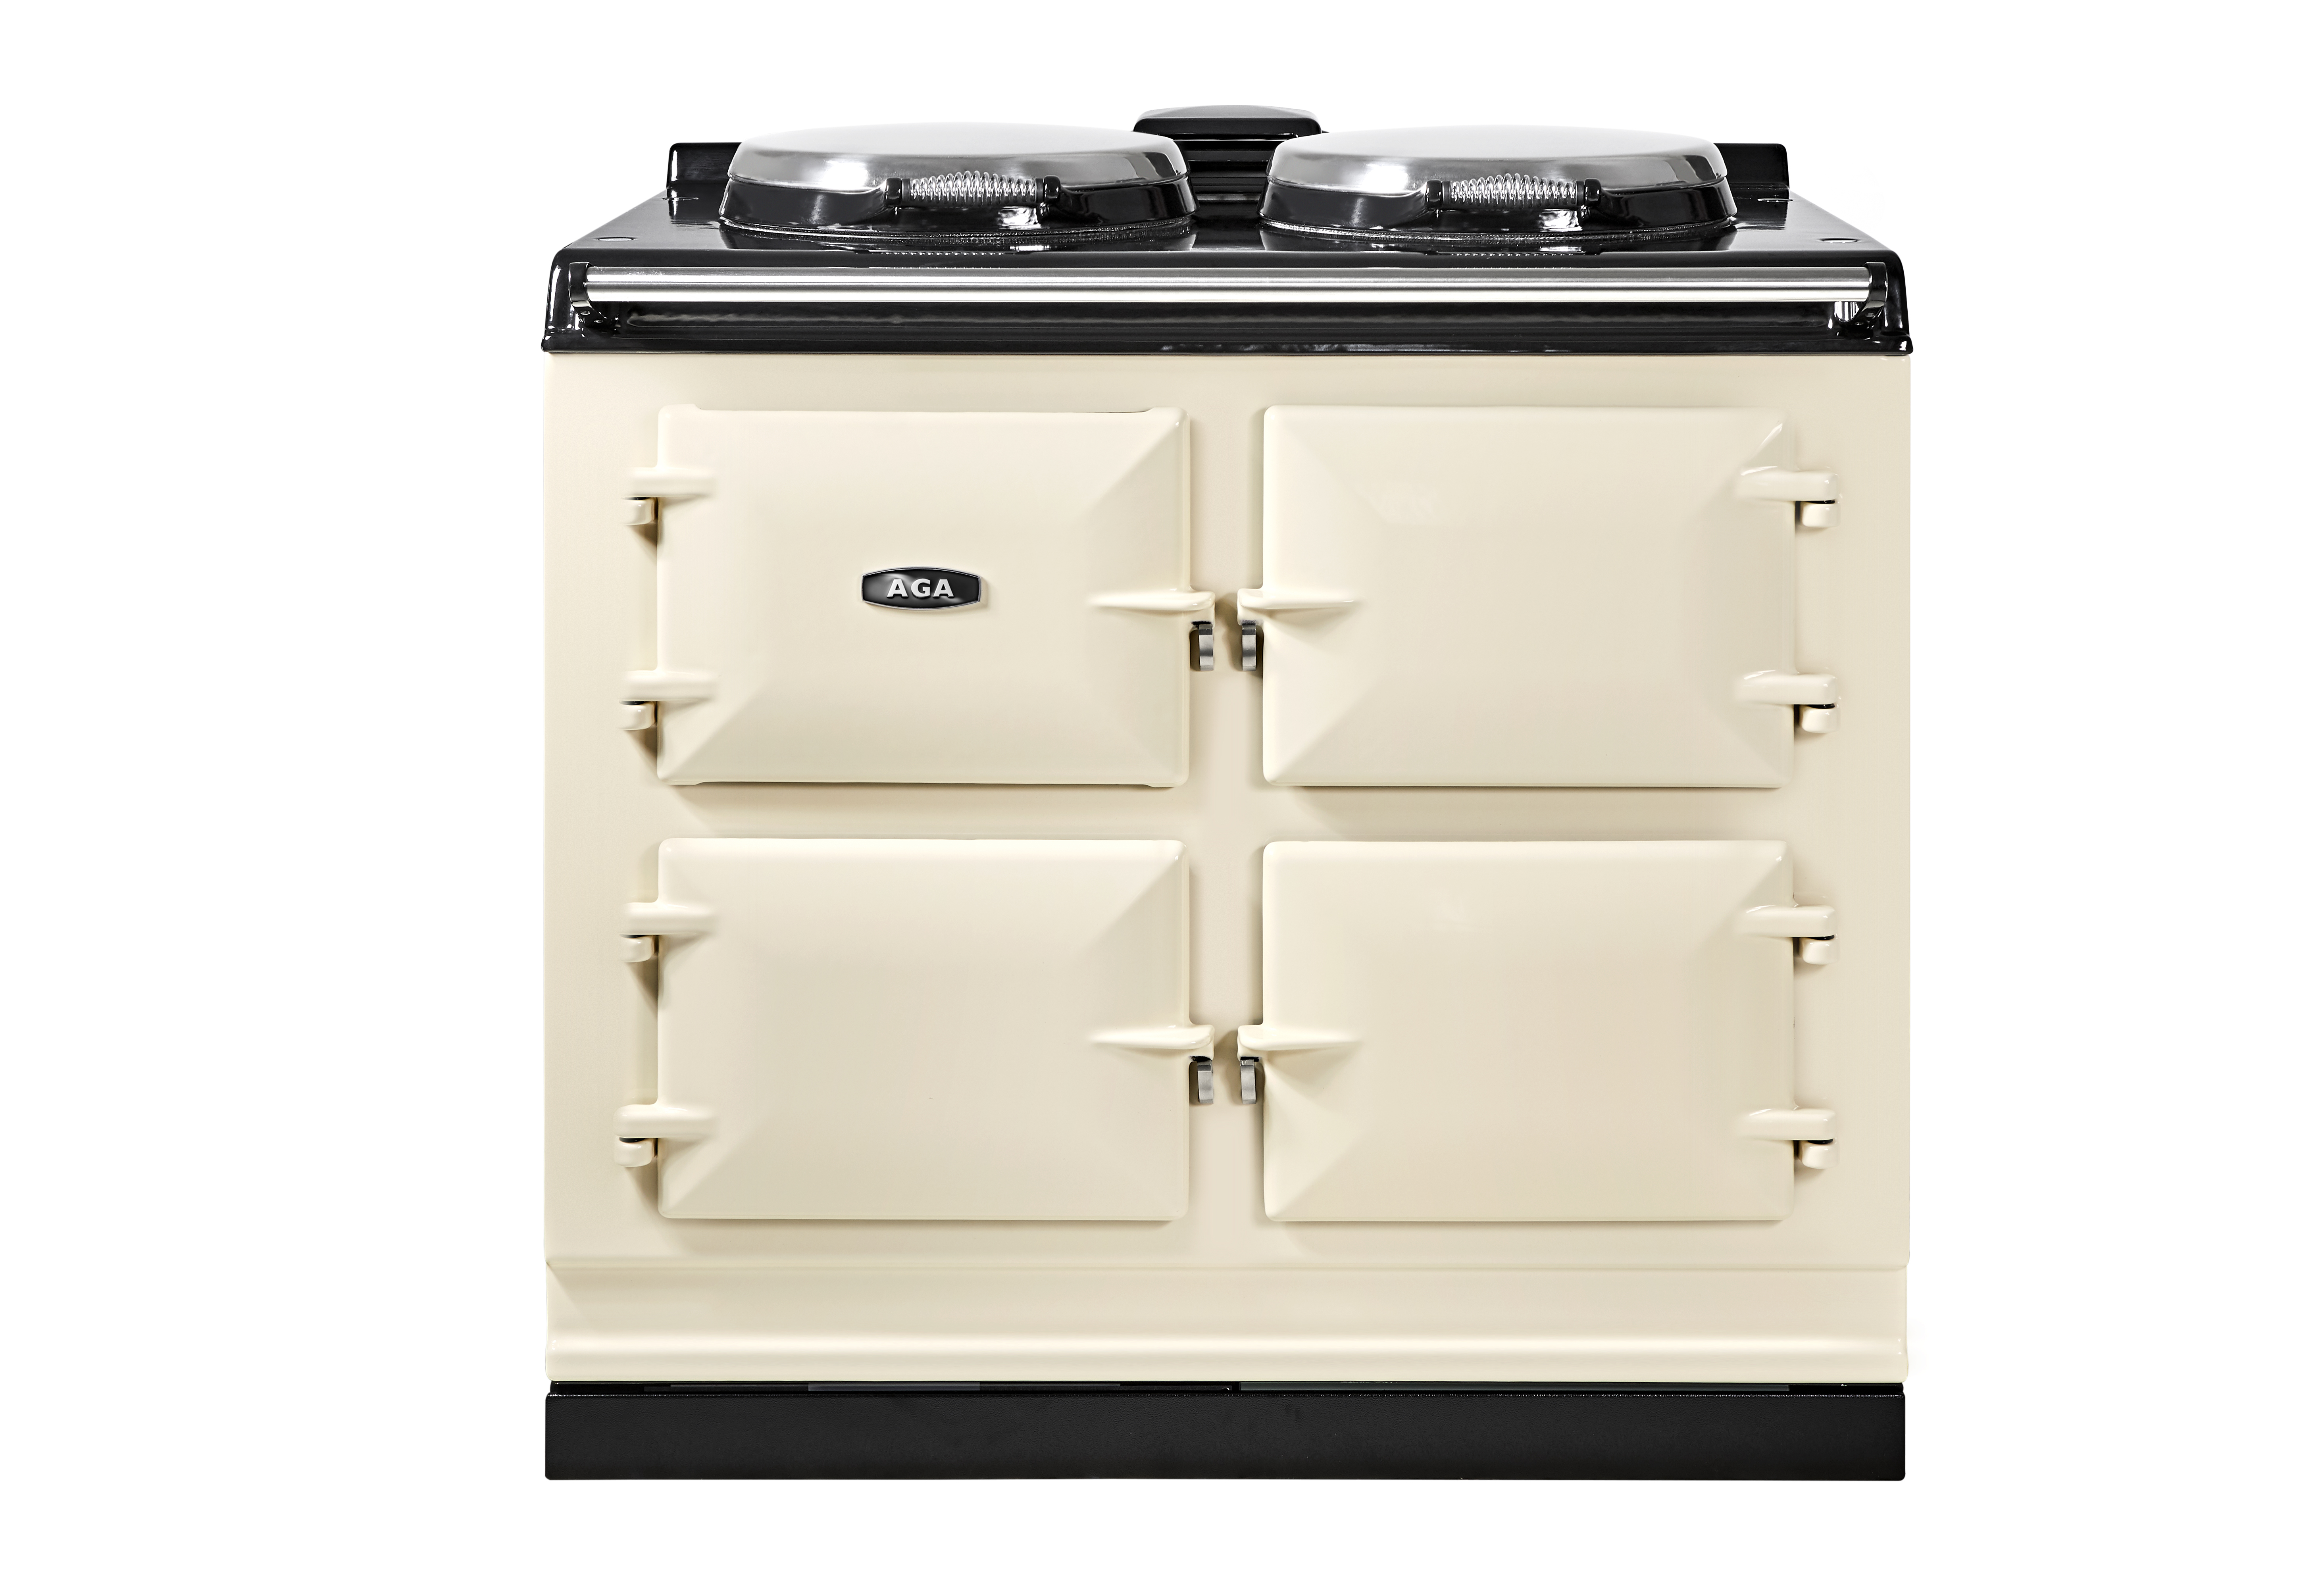 R7 100-3, three oven 7 Series AGA Cooker in Linen